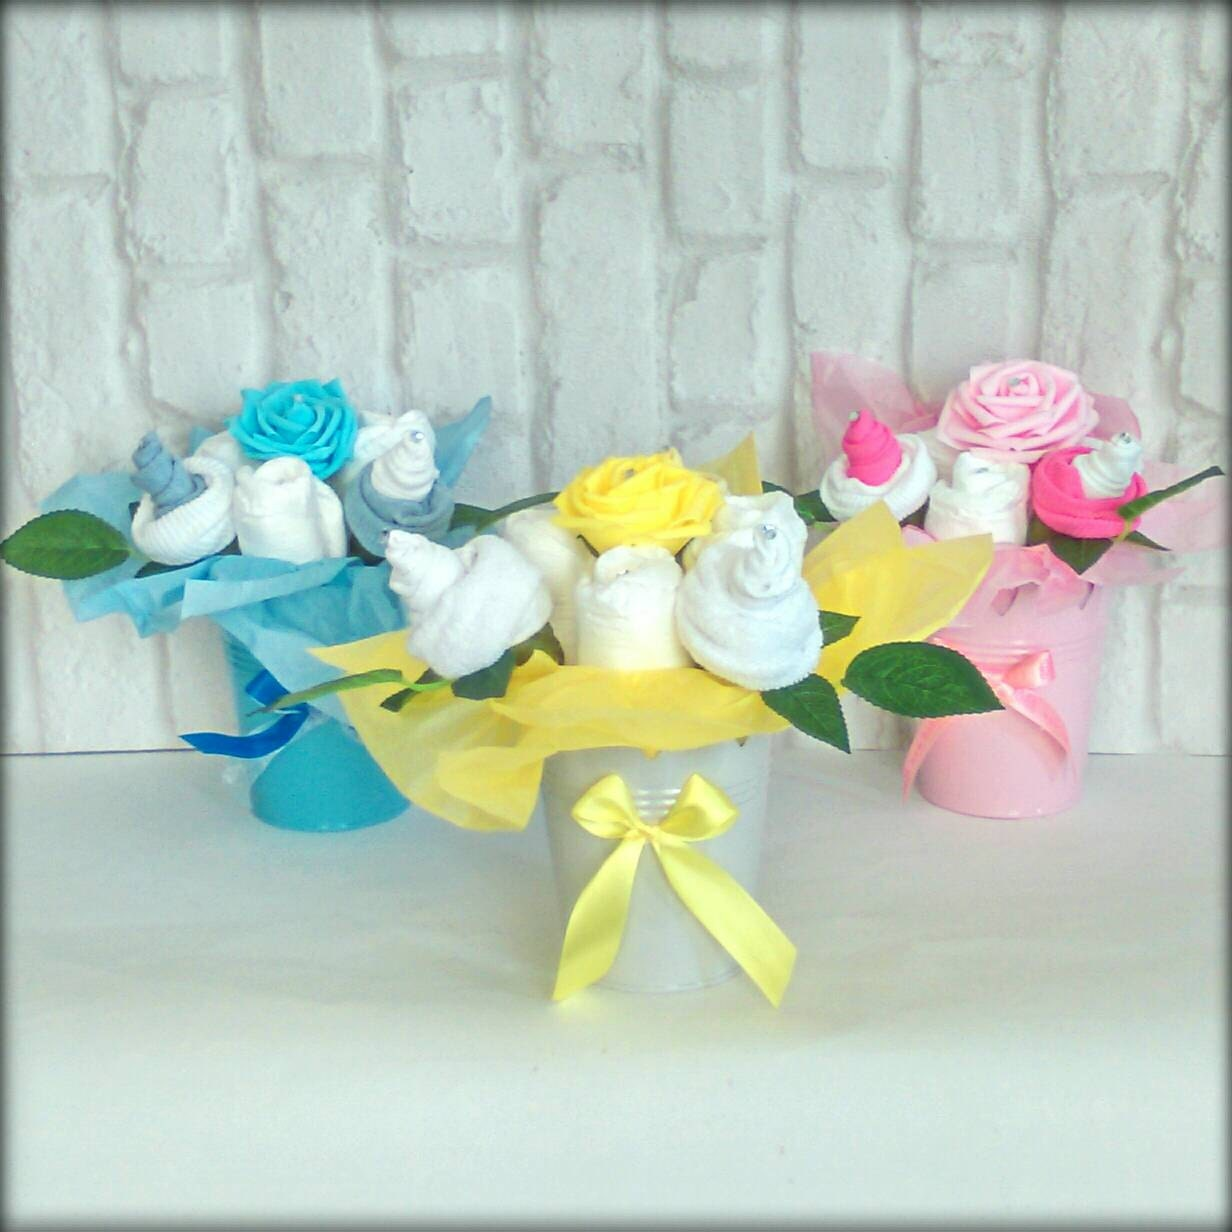 baby shower baby essentials flower pot gift maternity leave